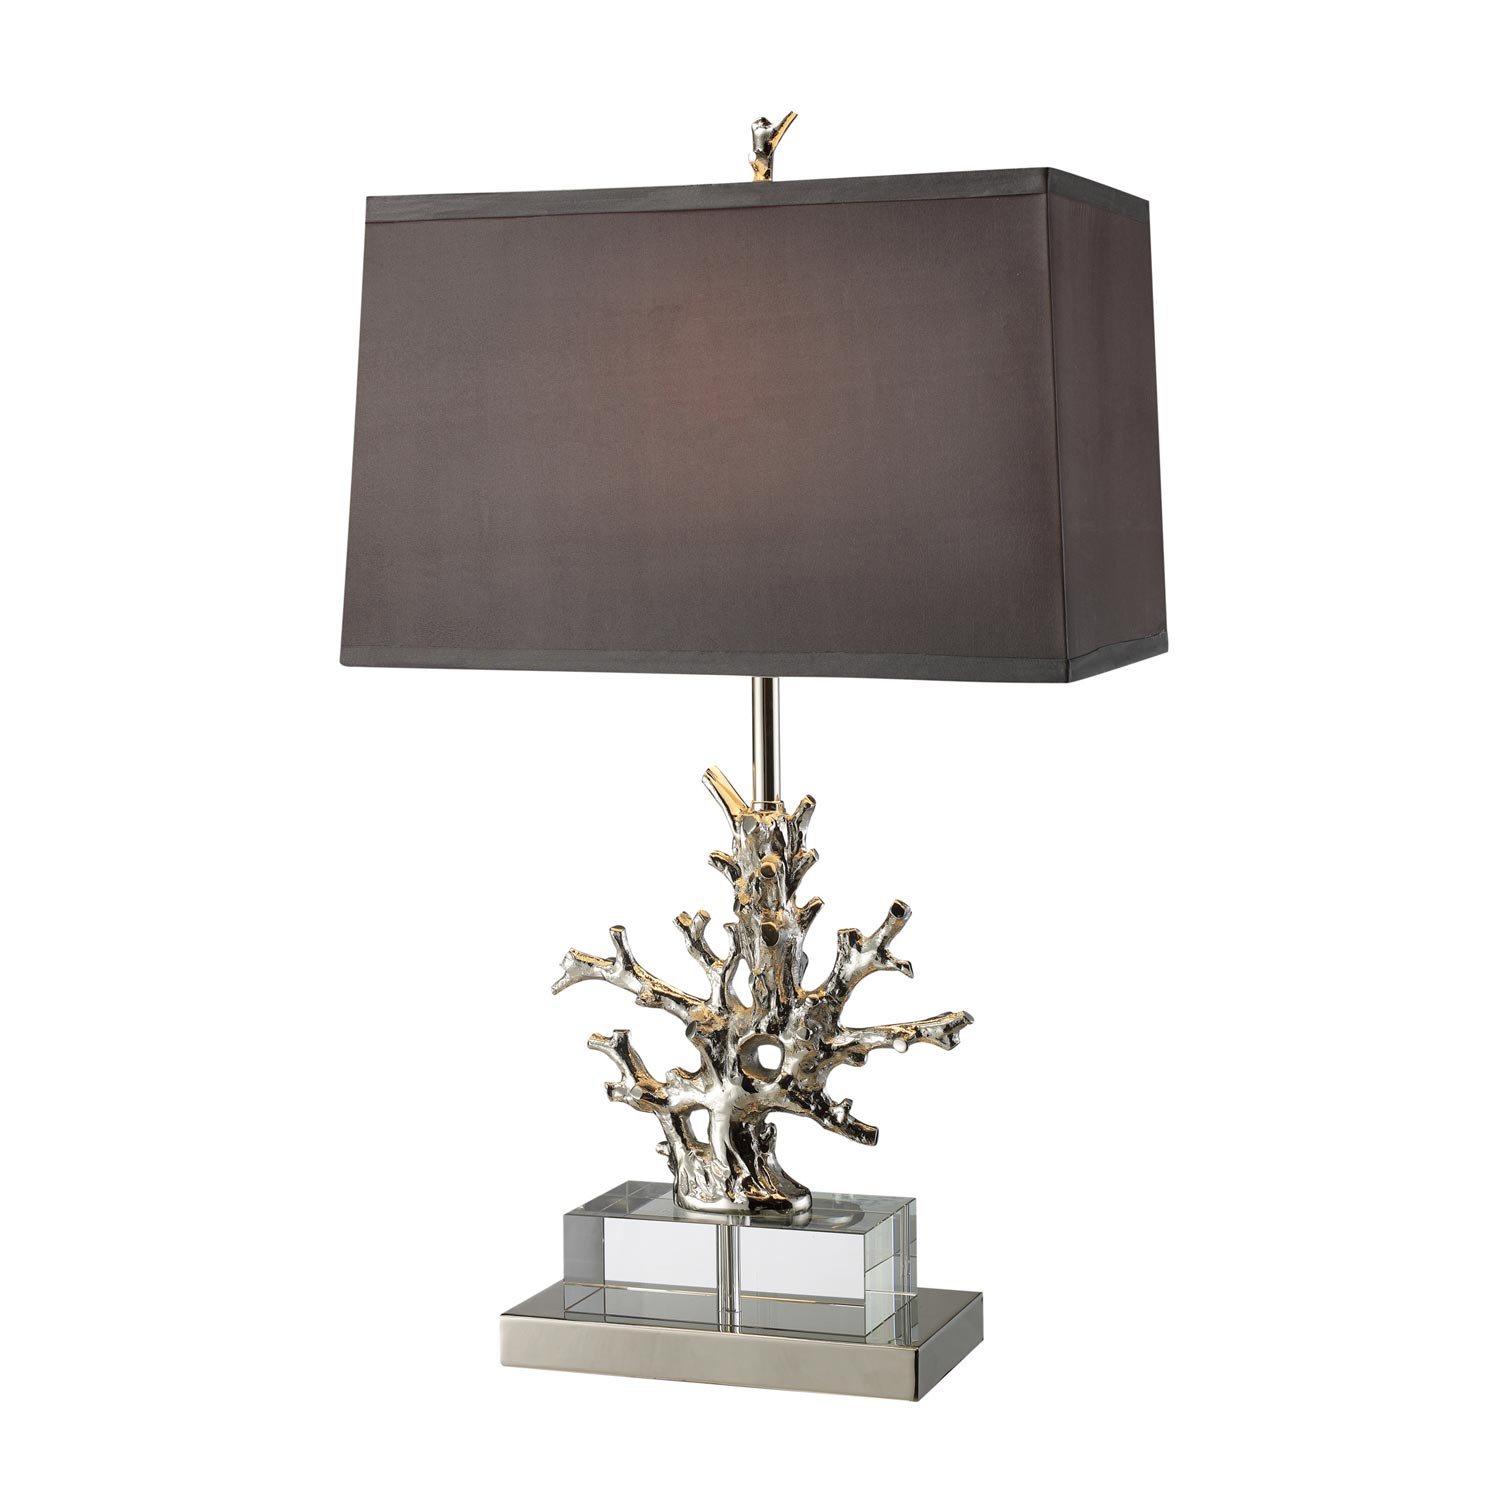 Elk Lighting D1867 Covington Table Lamp - Polished Nickel and Clear Crystal